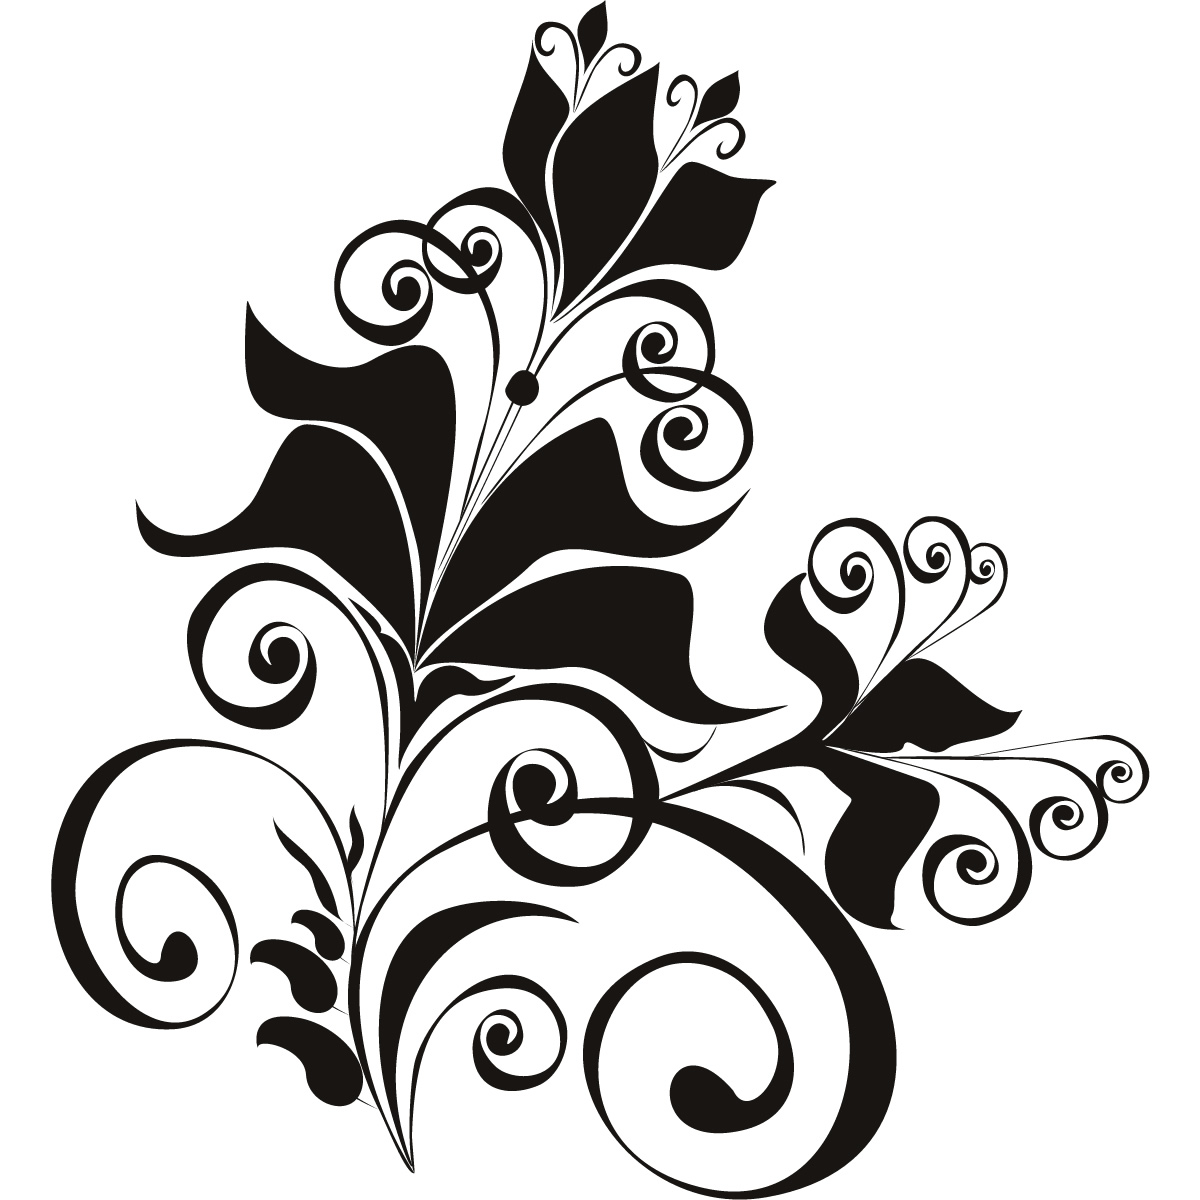 Floral designs clipart hd clip art stock Free Floral Designs, Download Free Clip Art, Free Clip Art on ... clip art stock